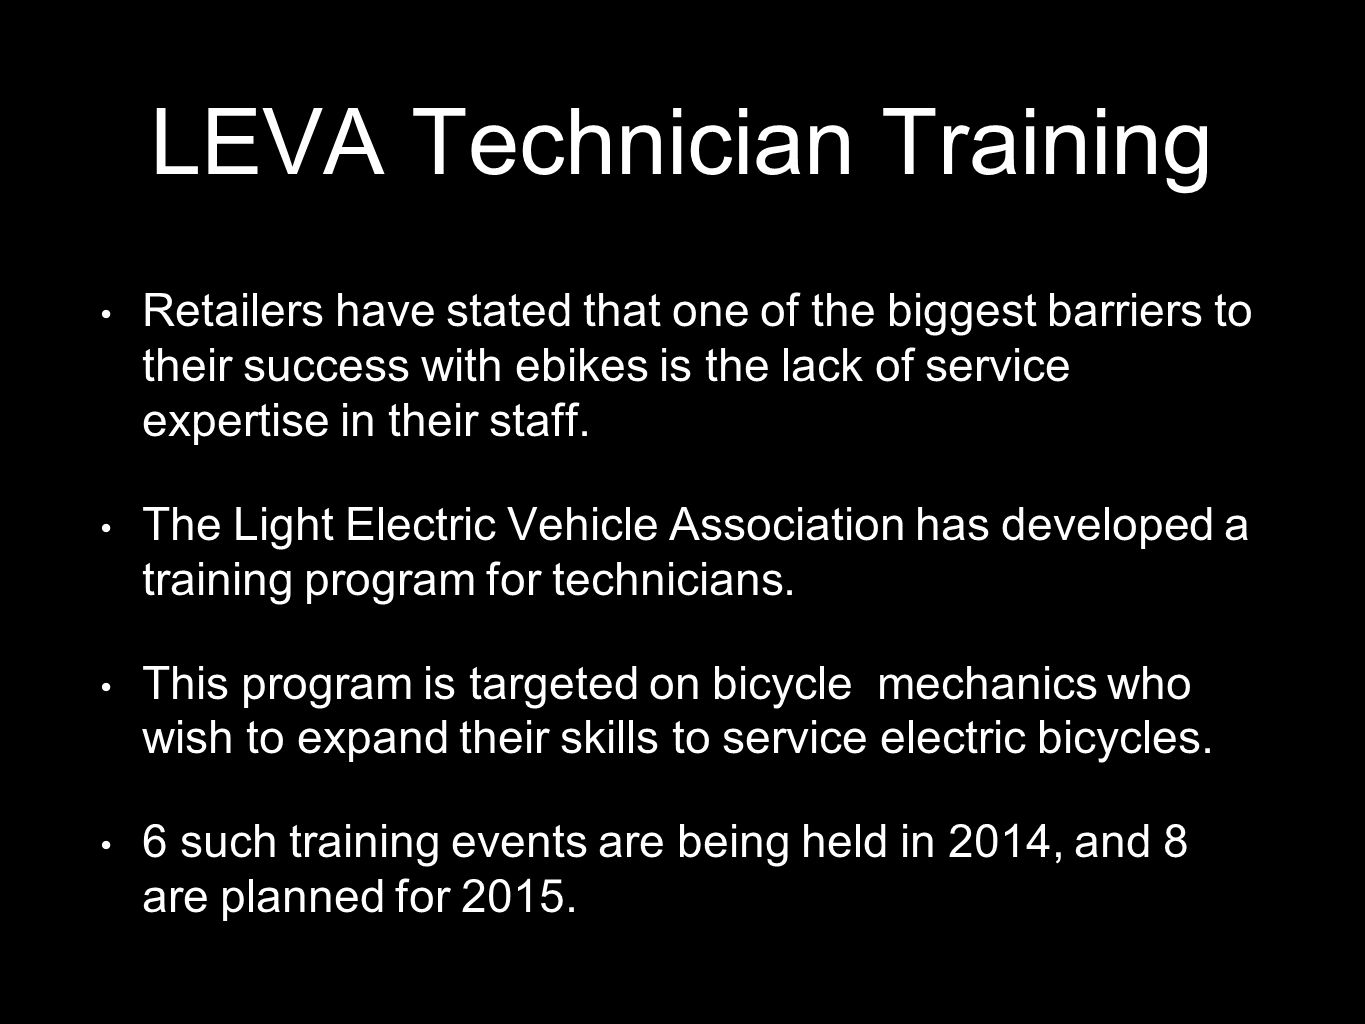 LEVA Technician Training Retailers have stated that one of the biggest barriers to their success with ebikes is the lack of service expertise in their